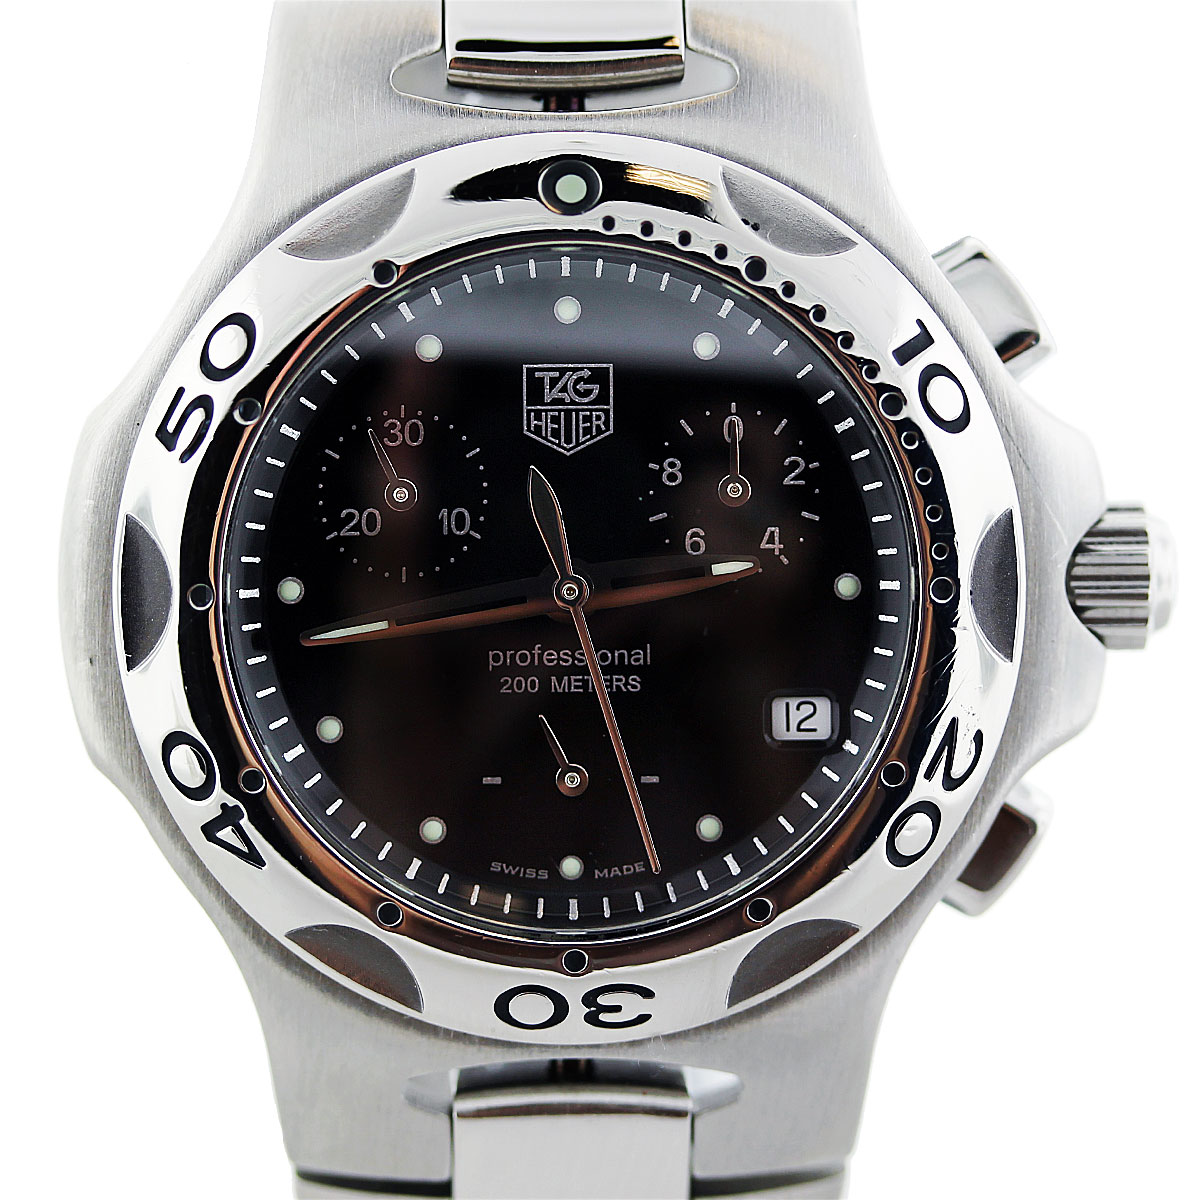 Tag Heuer Kirium Cl1212 Midsize Chronograph Unisex Watch